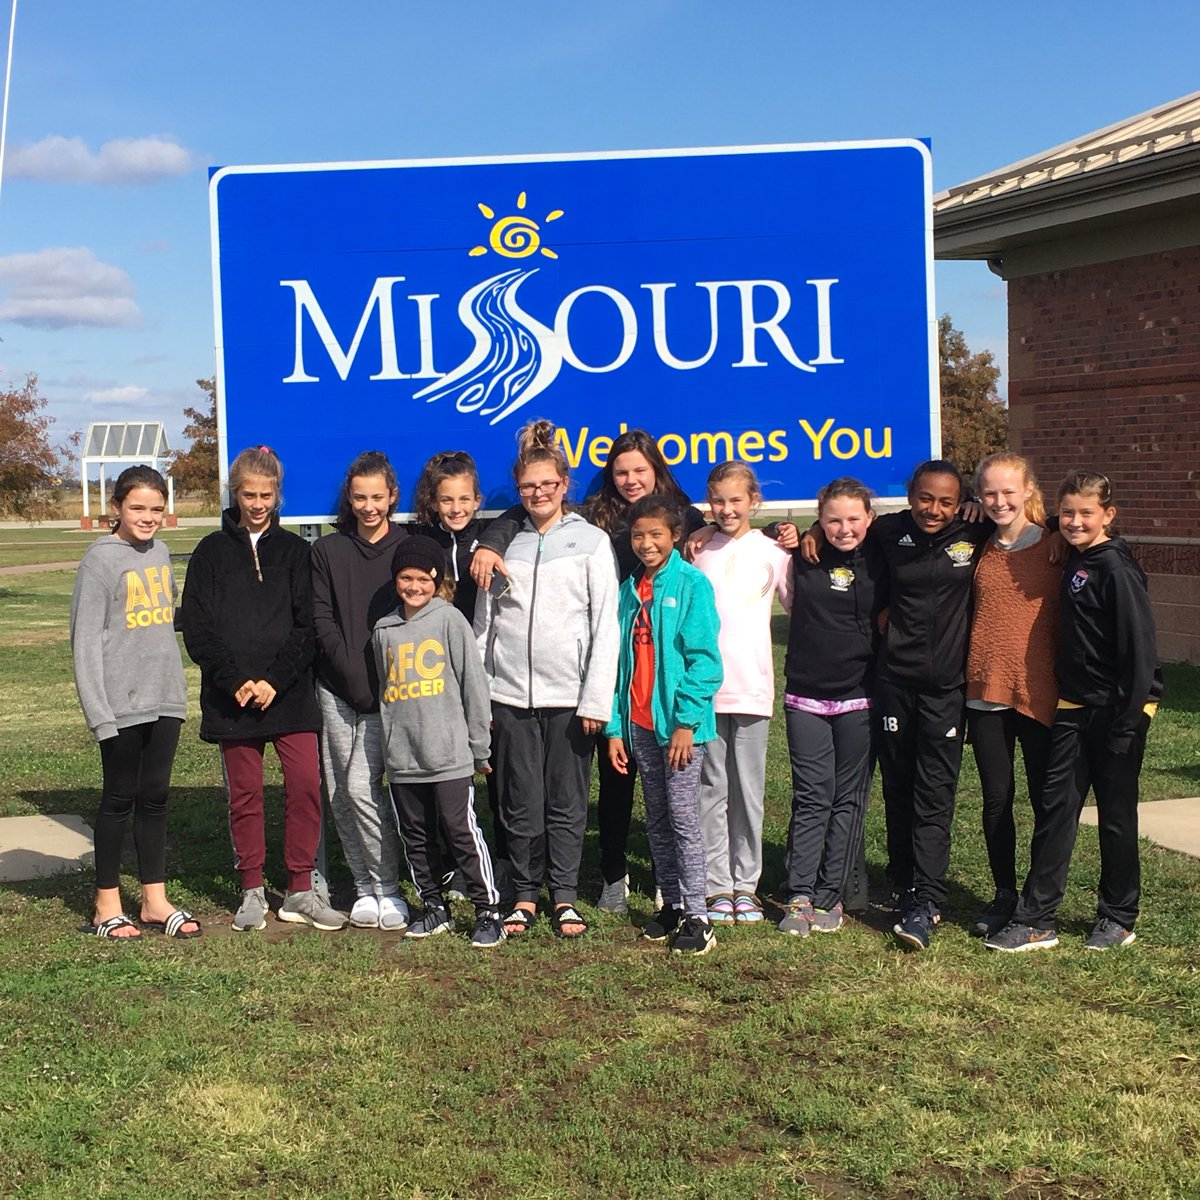 Coach Mike Smith's 07 girls are in Missouri for the Scott Gallagher Fall classic tournament.  The St. Louis based event is an elite soccer tournament hosting top teams from all over the US. Follow us here for results and highlights, best of luck girls⚽️💛! #GoAFC